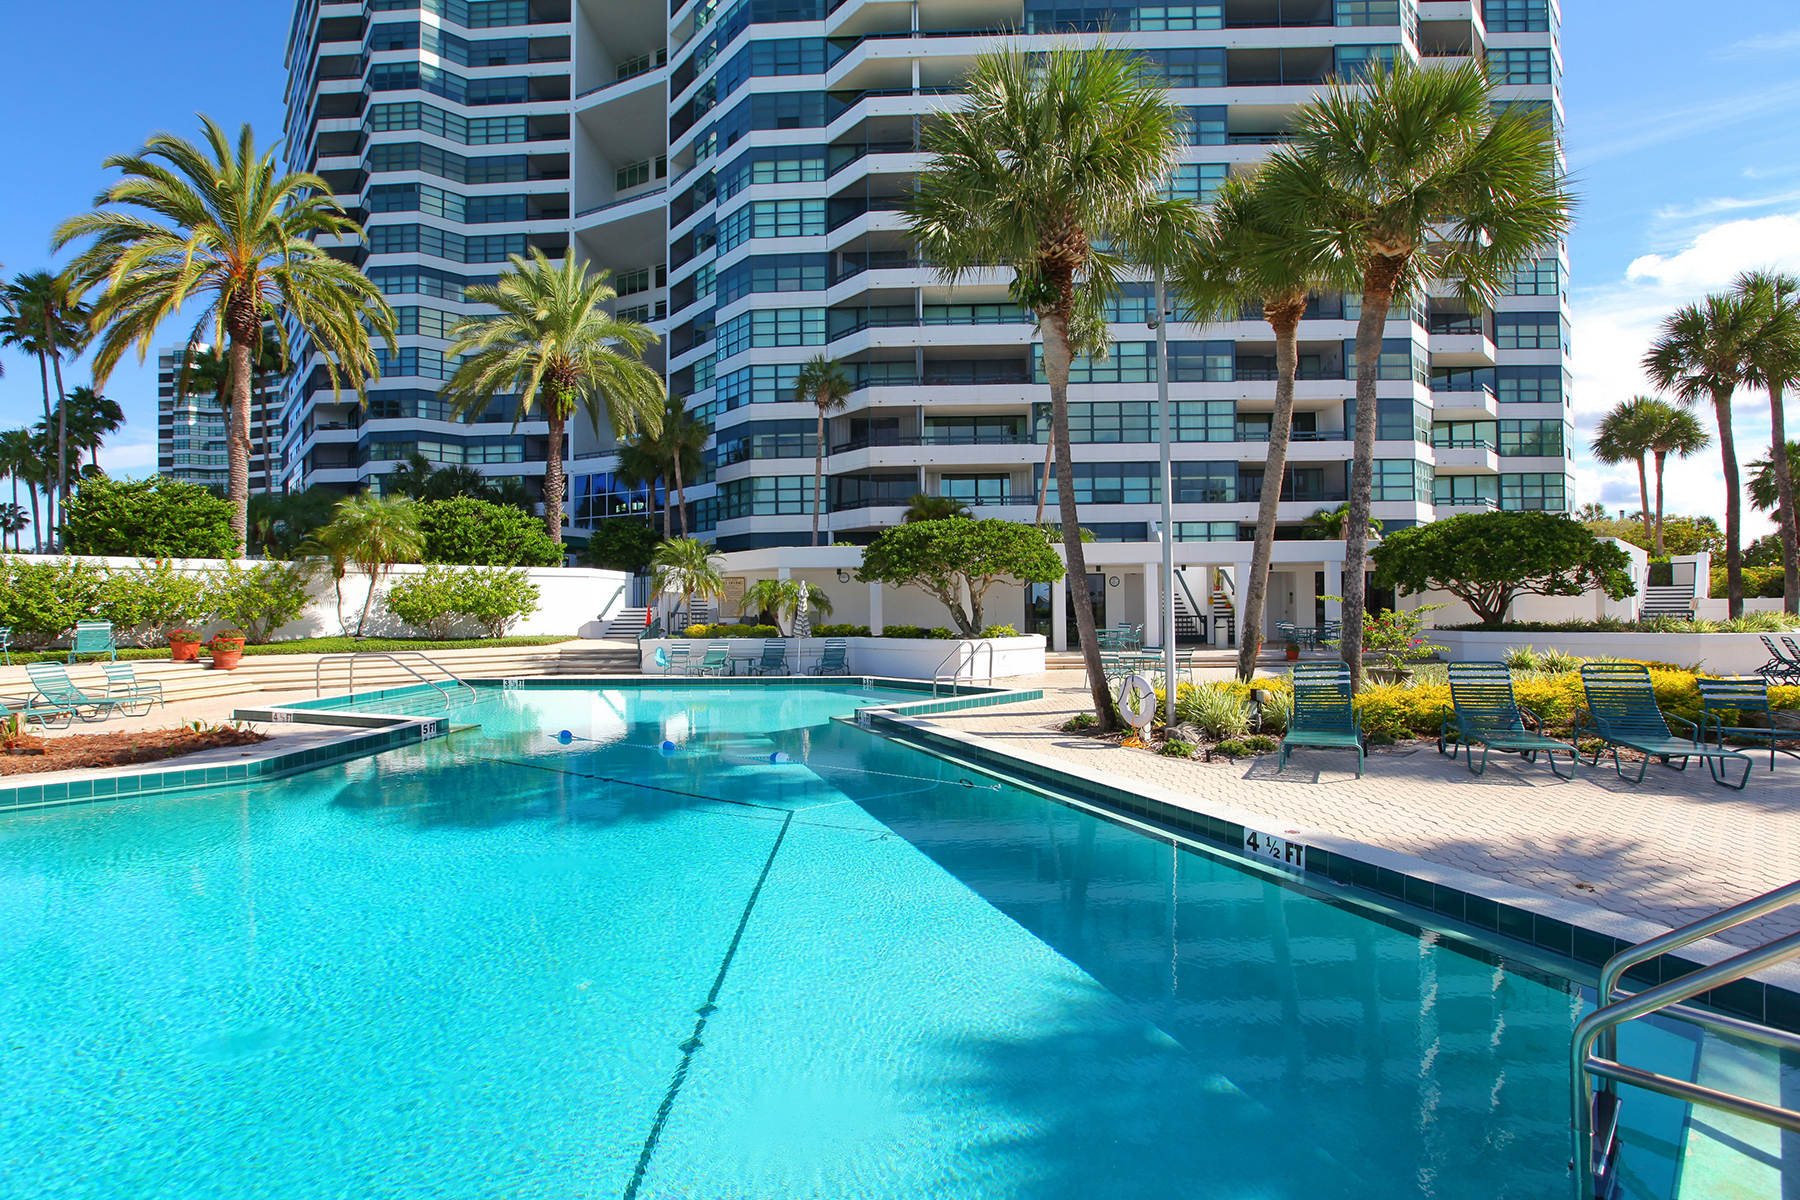 Condominium for Sale at CONDO ON THE BAY 888 Blvd Of The Arts 1901, 1902, Sarasota, Florida 34236 United States